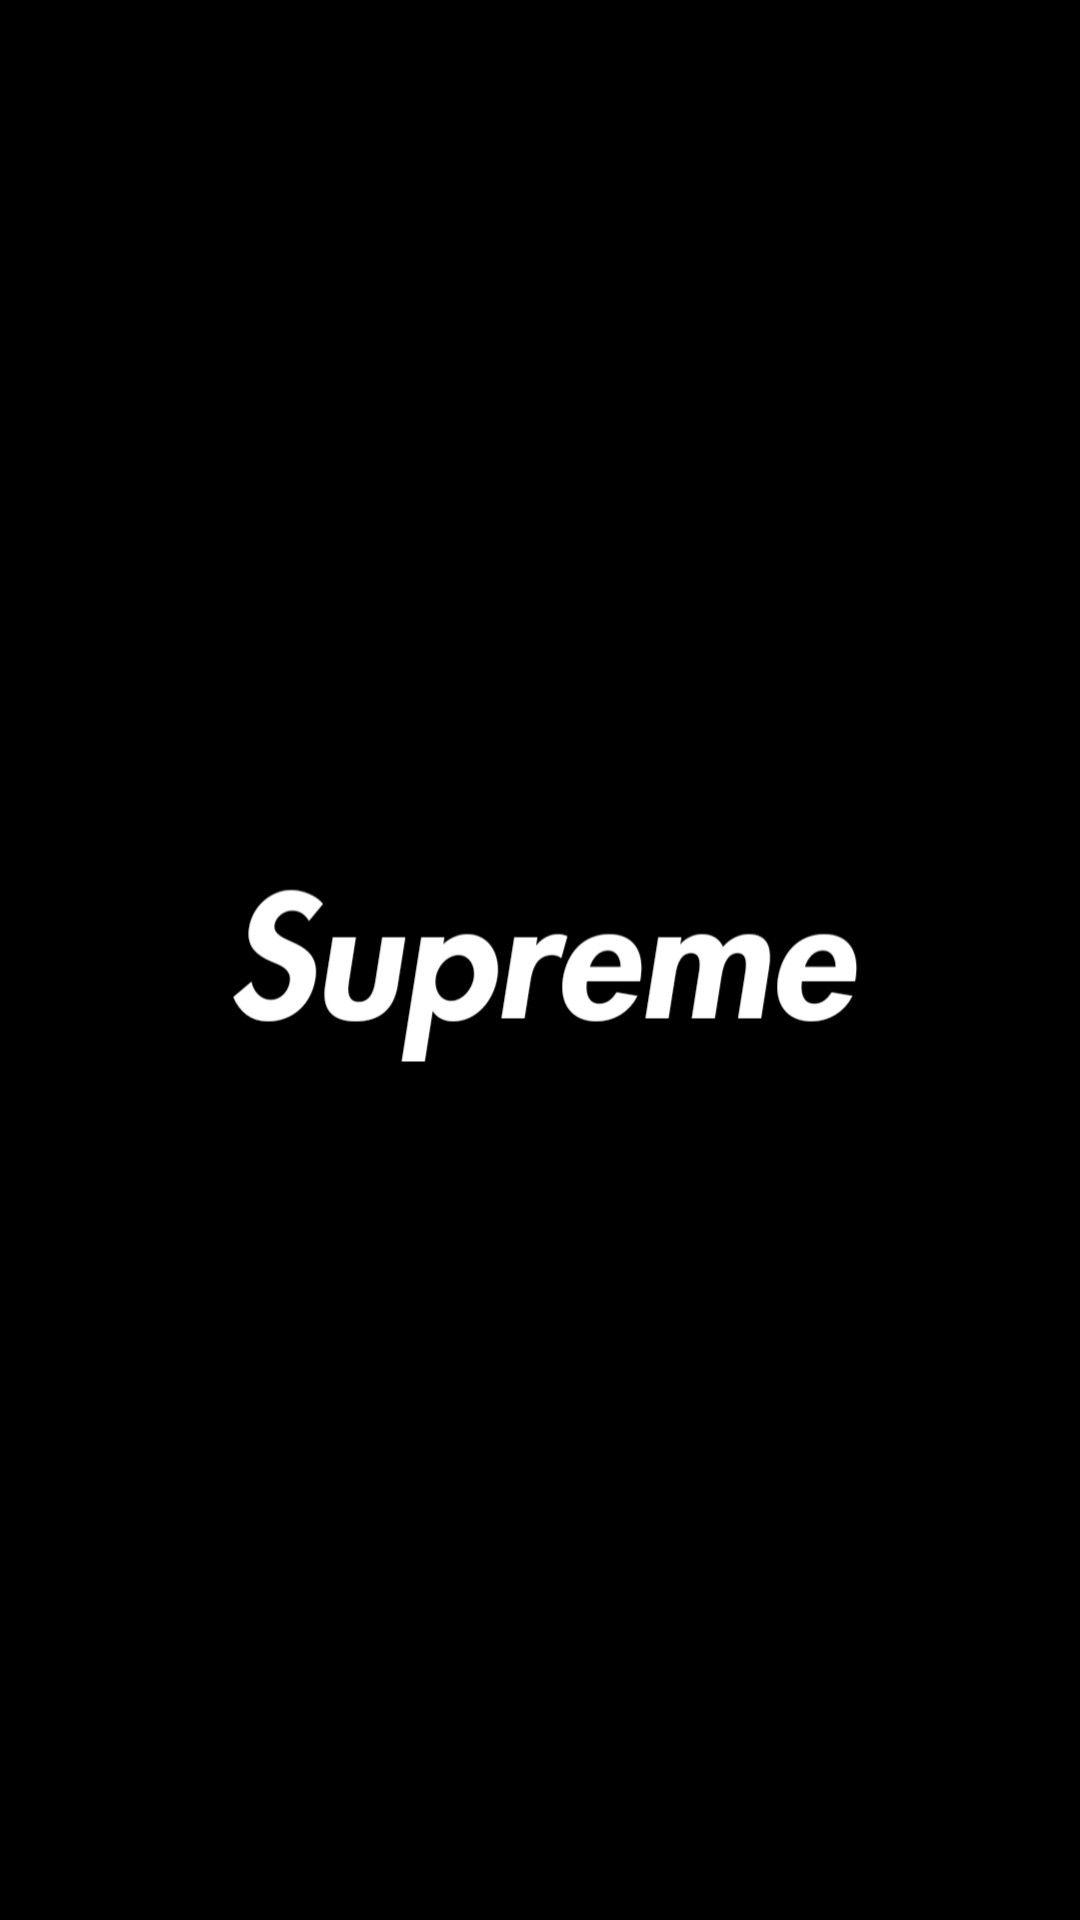 Supreme White Wallpaper : supreme, white, wallpaper, Supreme, Black, IPhone, Wallpapers, Wallpaper